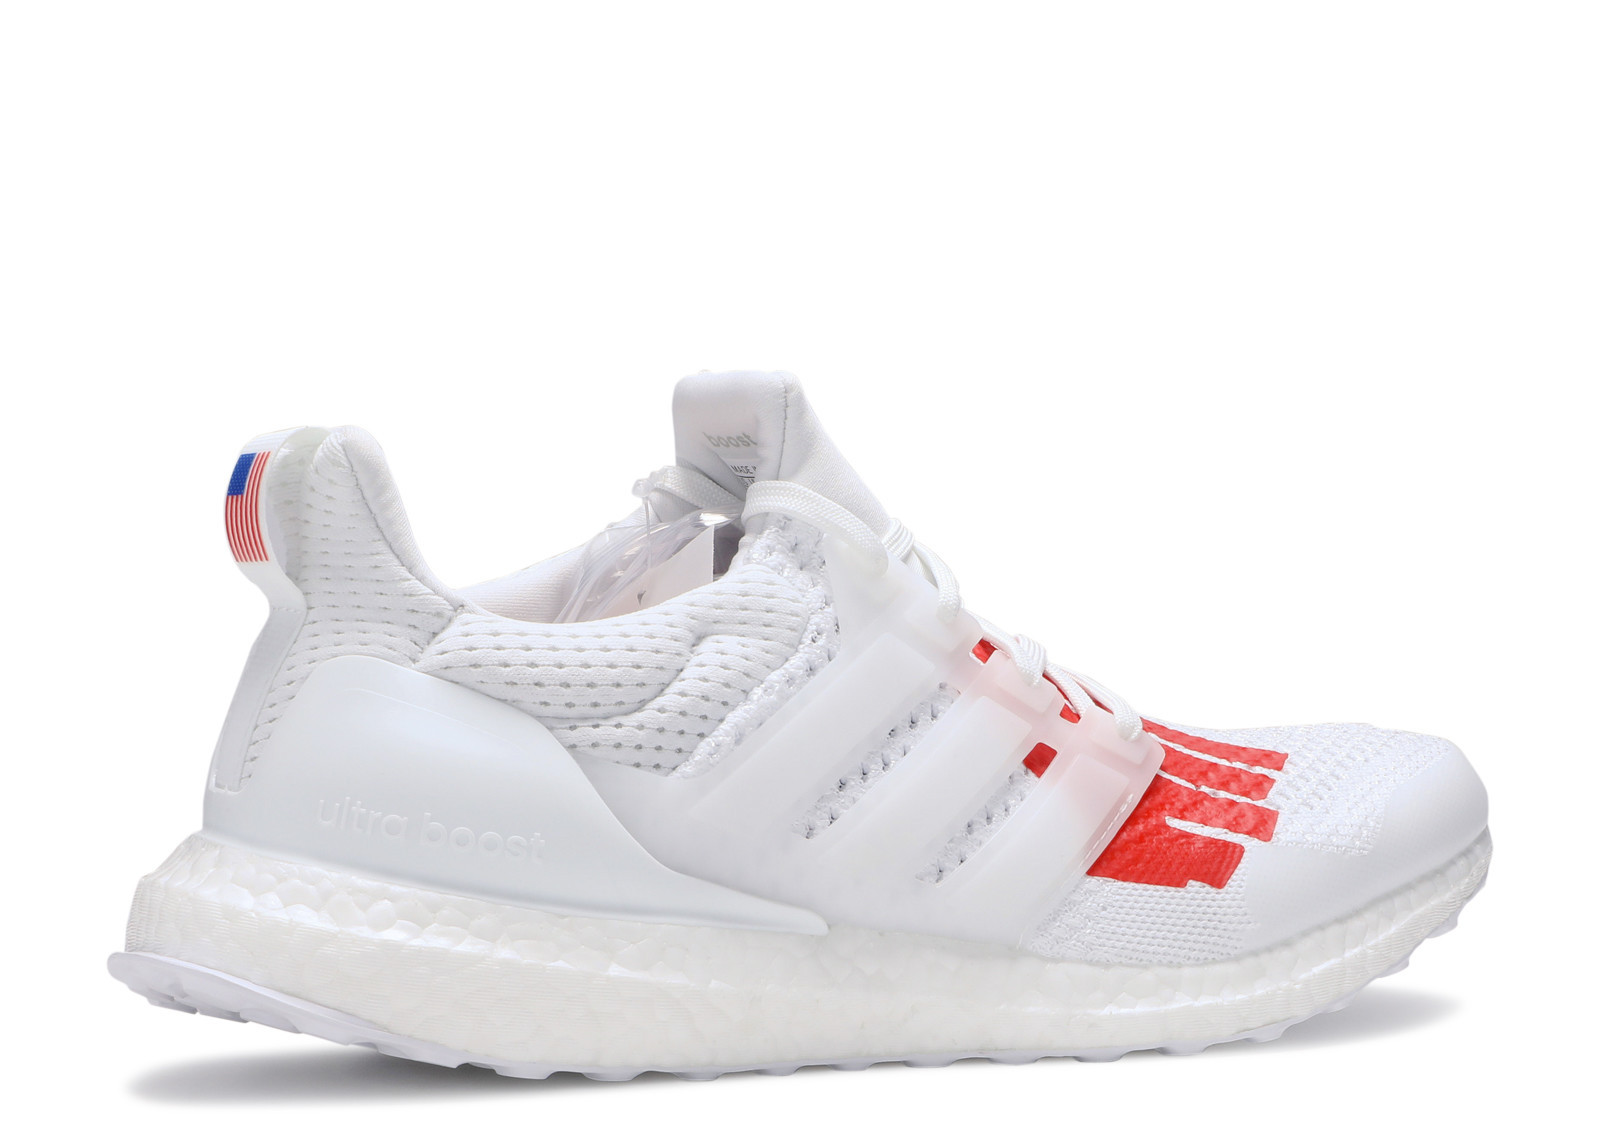 UNDEFEATED X ULTRA BOOST 1.0 STARS AND STRIPES image 3